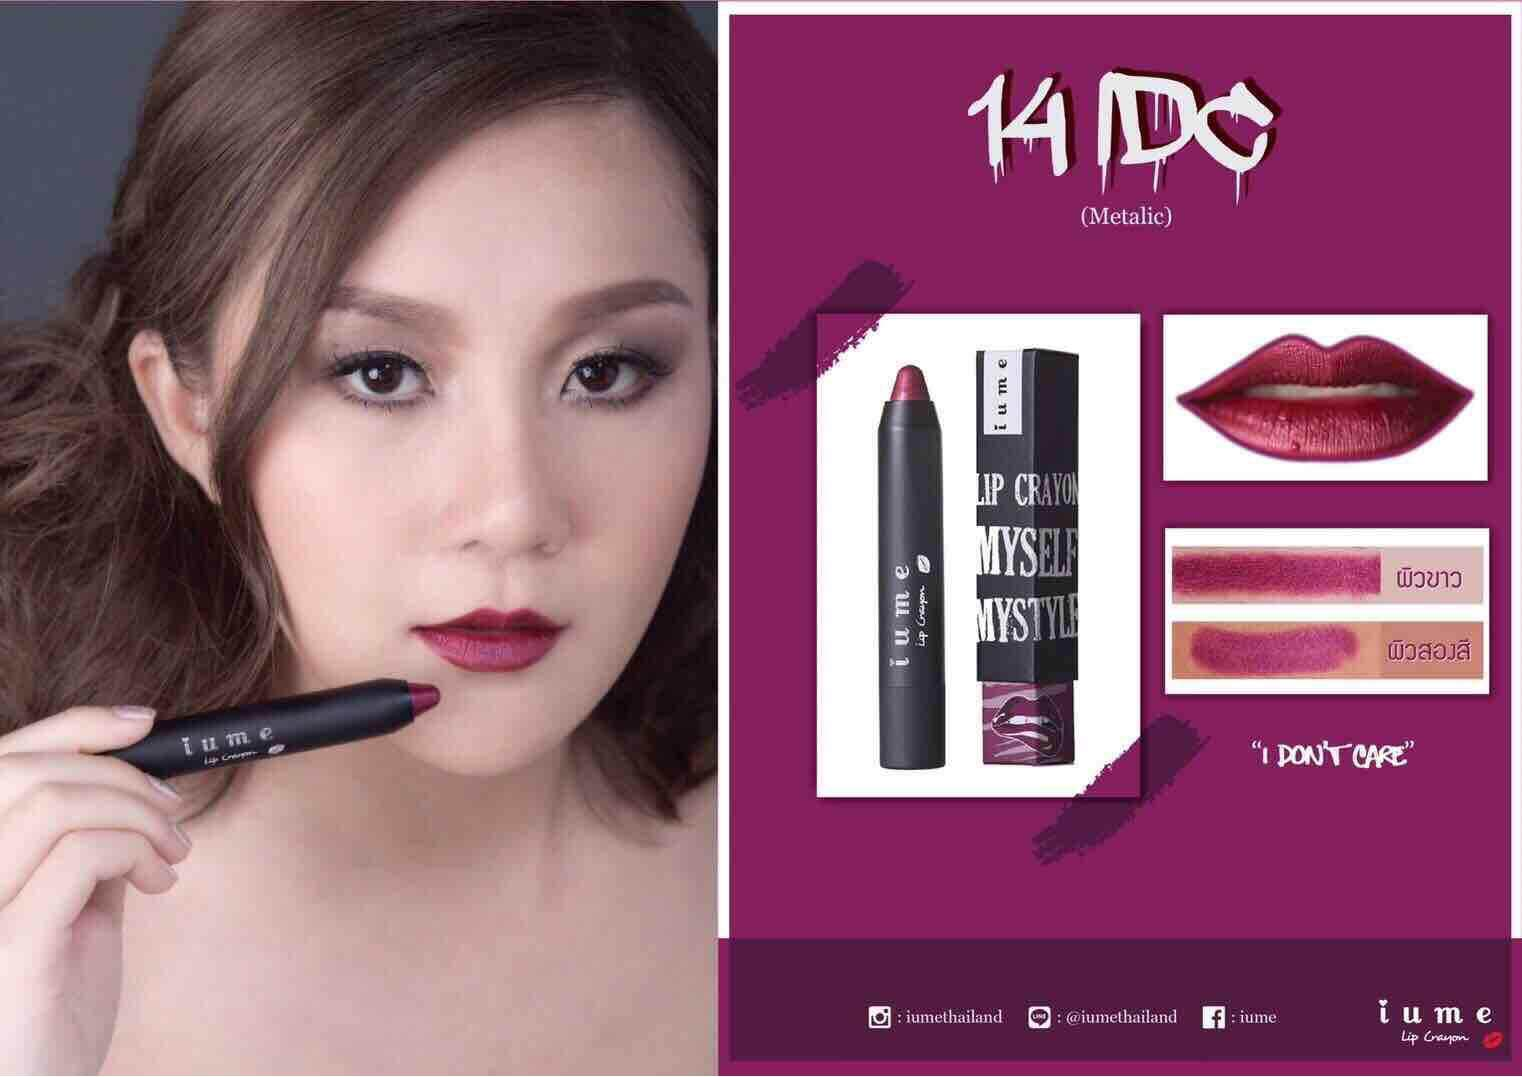 Iume Lip Crayon 14 Idc By Iume.